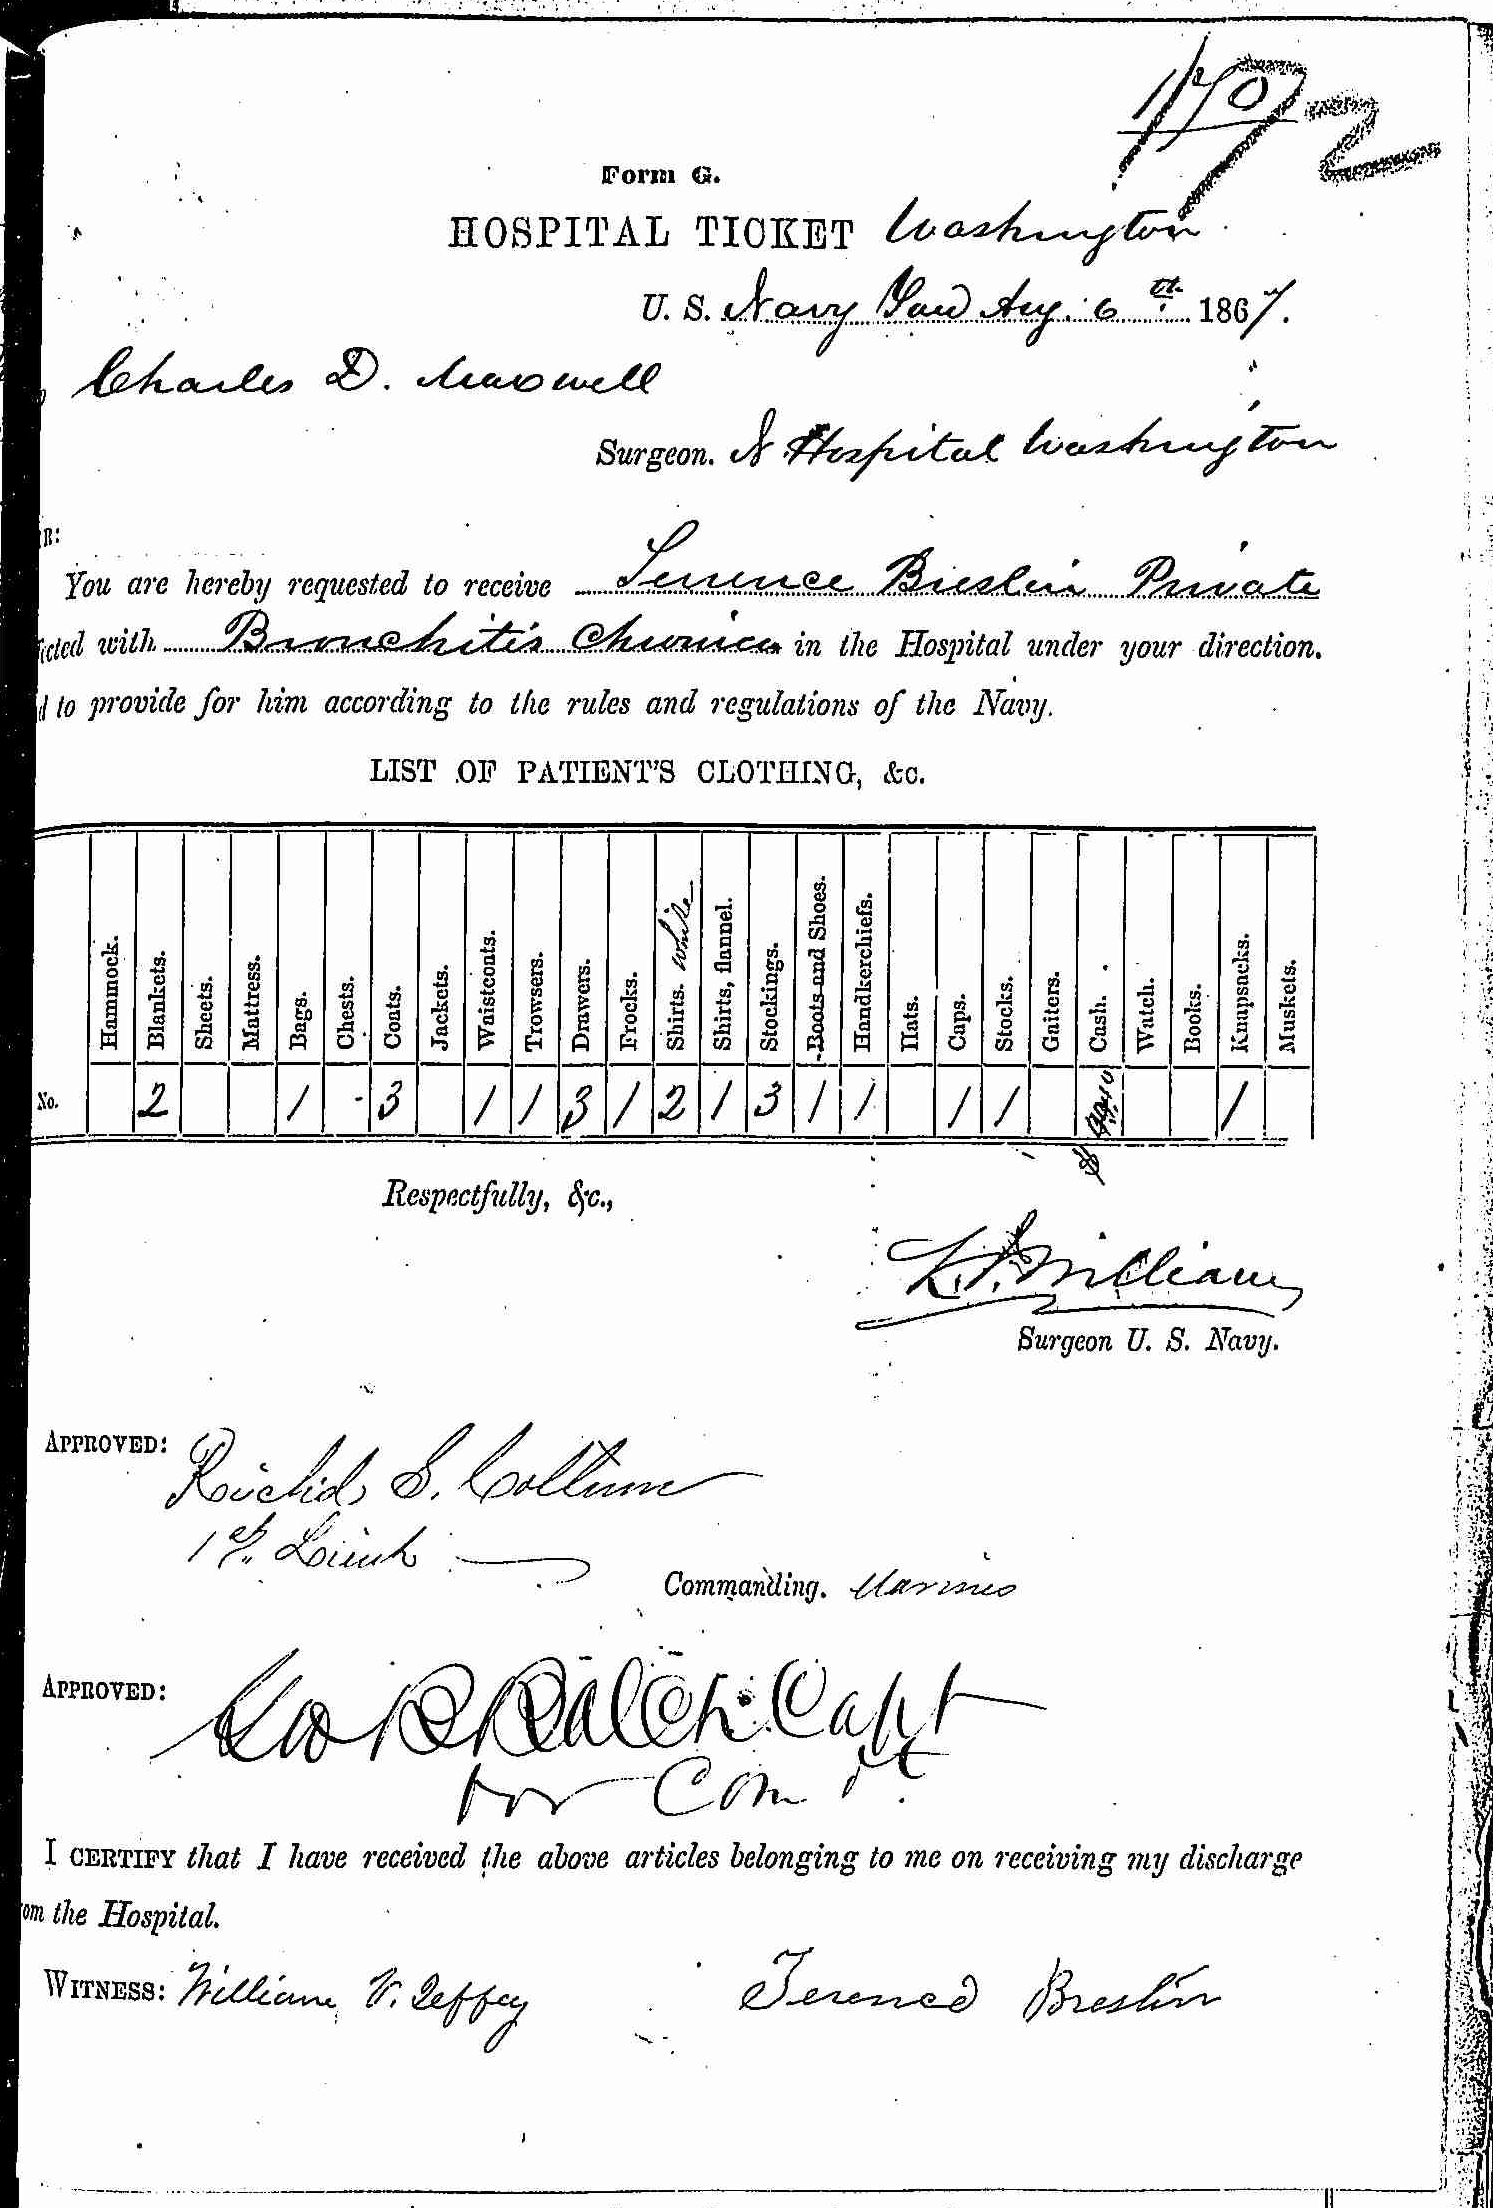 Entry for Terrence Breslin (second admission page 1 of 2) in the log Hospital Tickets and Case Papers - Naval Hospital - Washington, D.C. - 1866-68